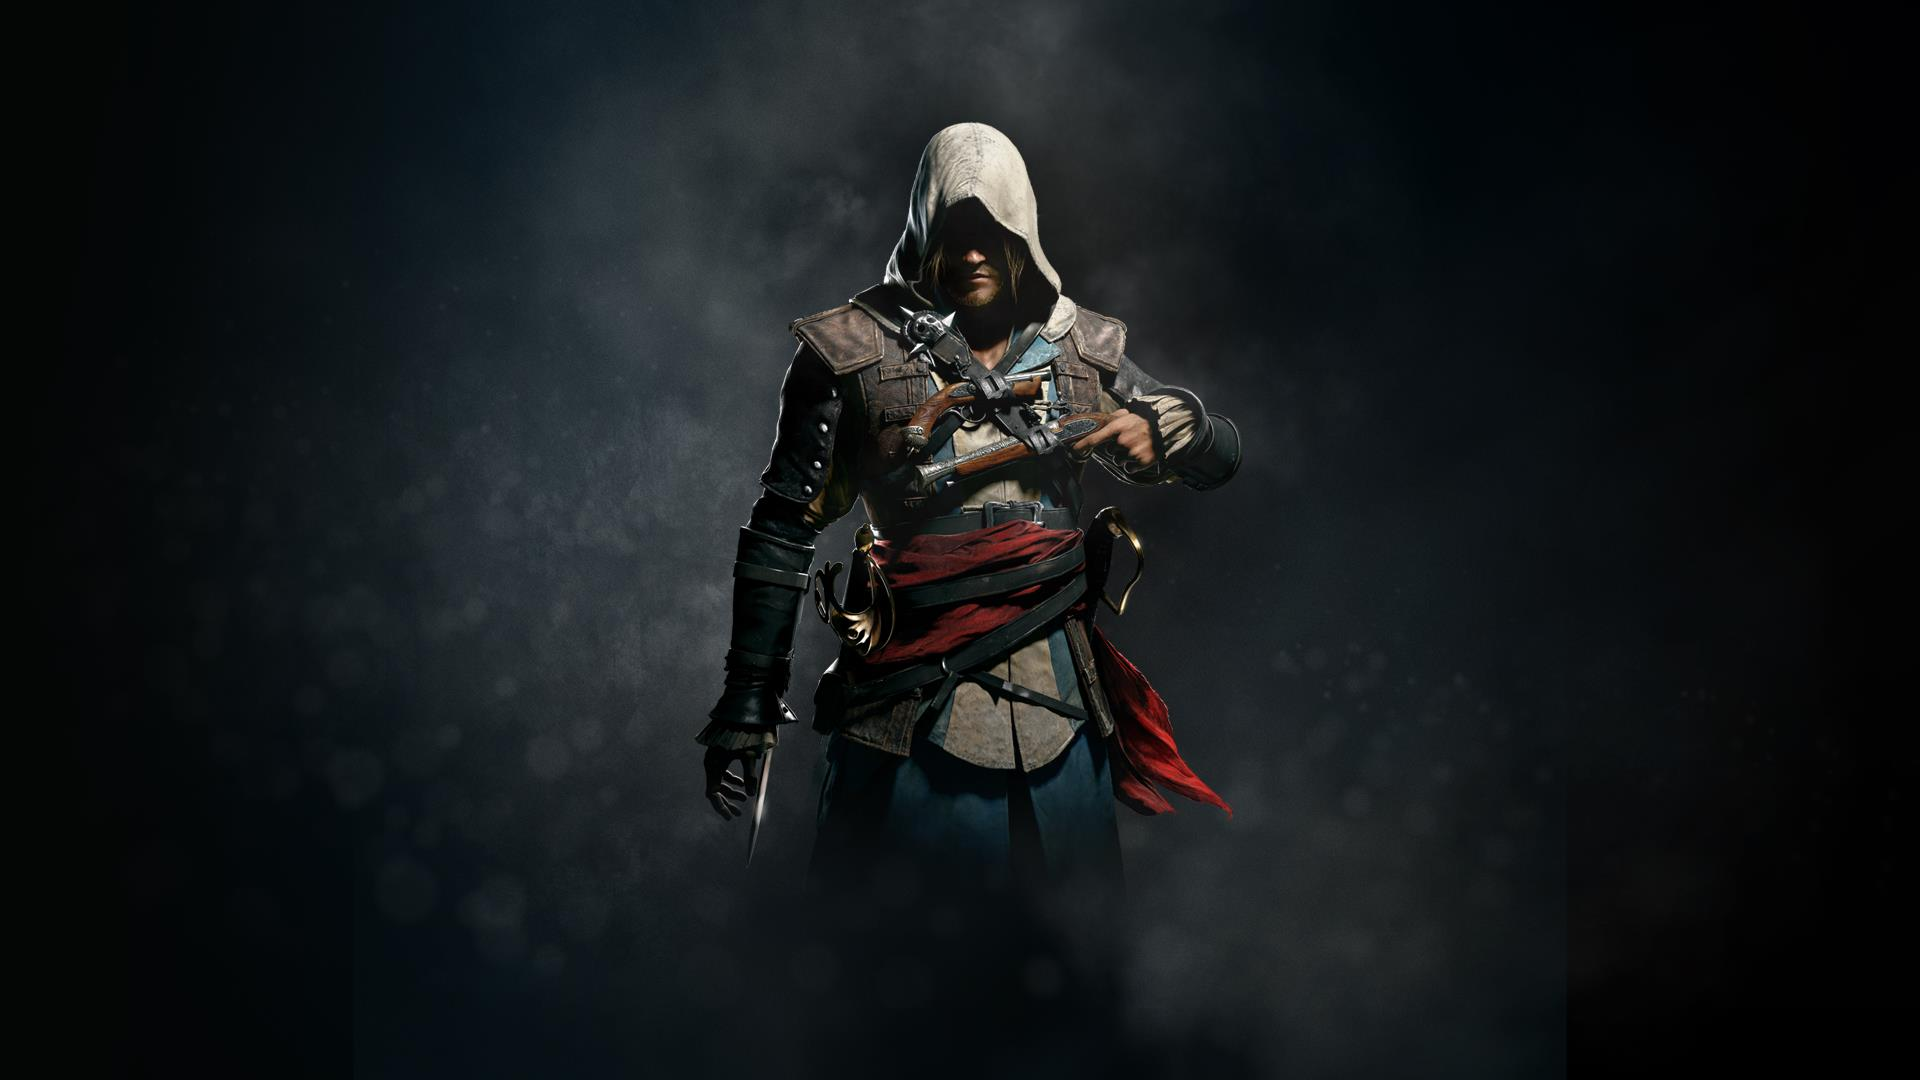 No Apologies in Assassin's Creed IV: Black Flag